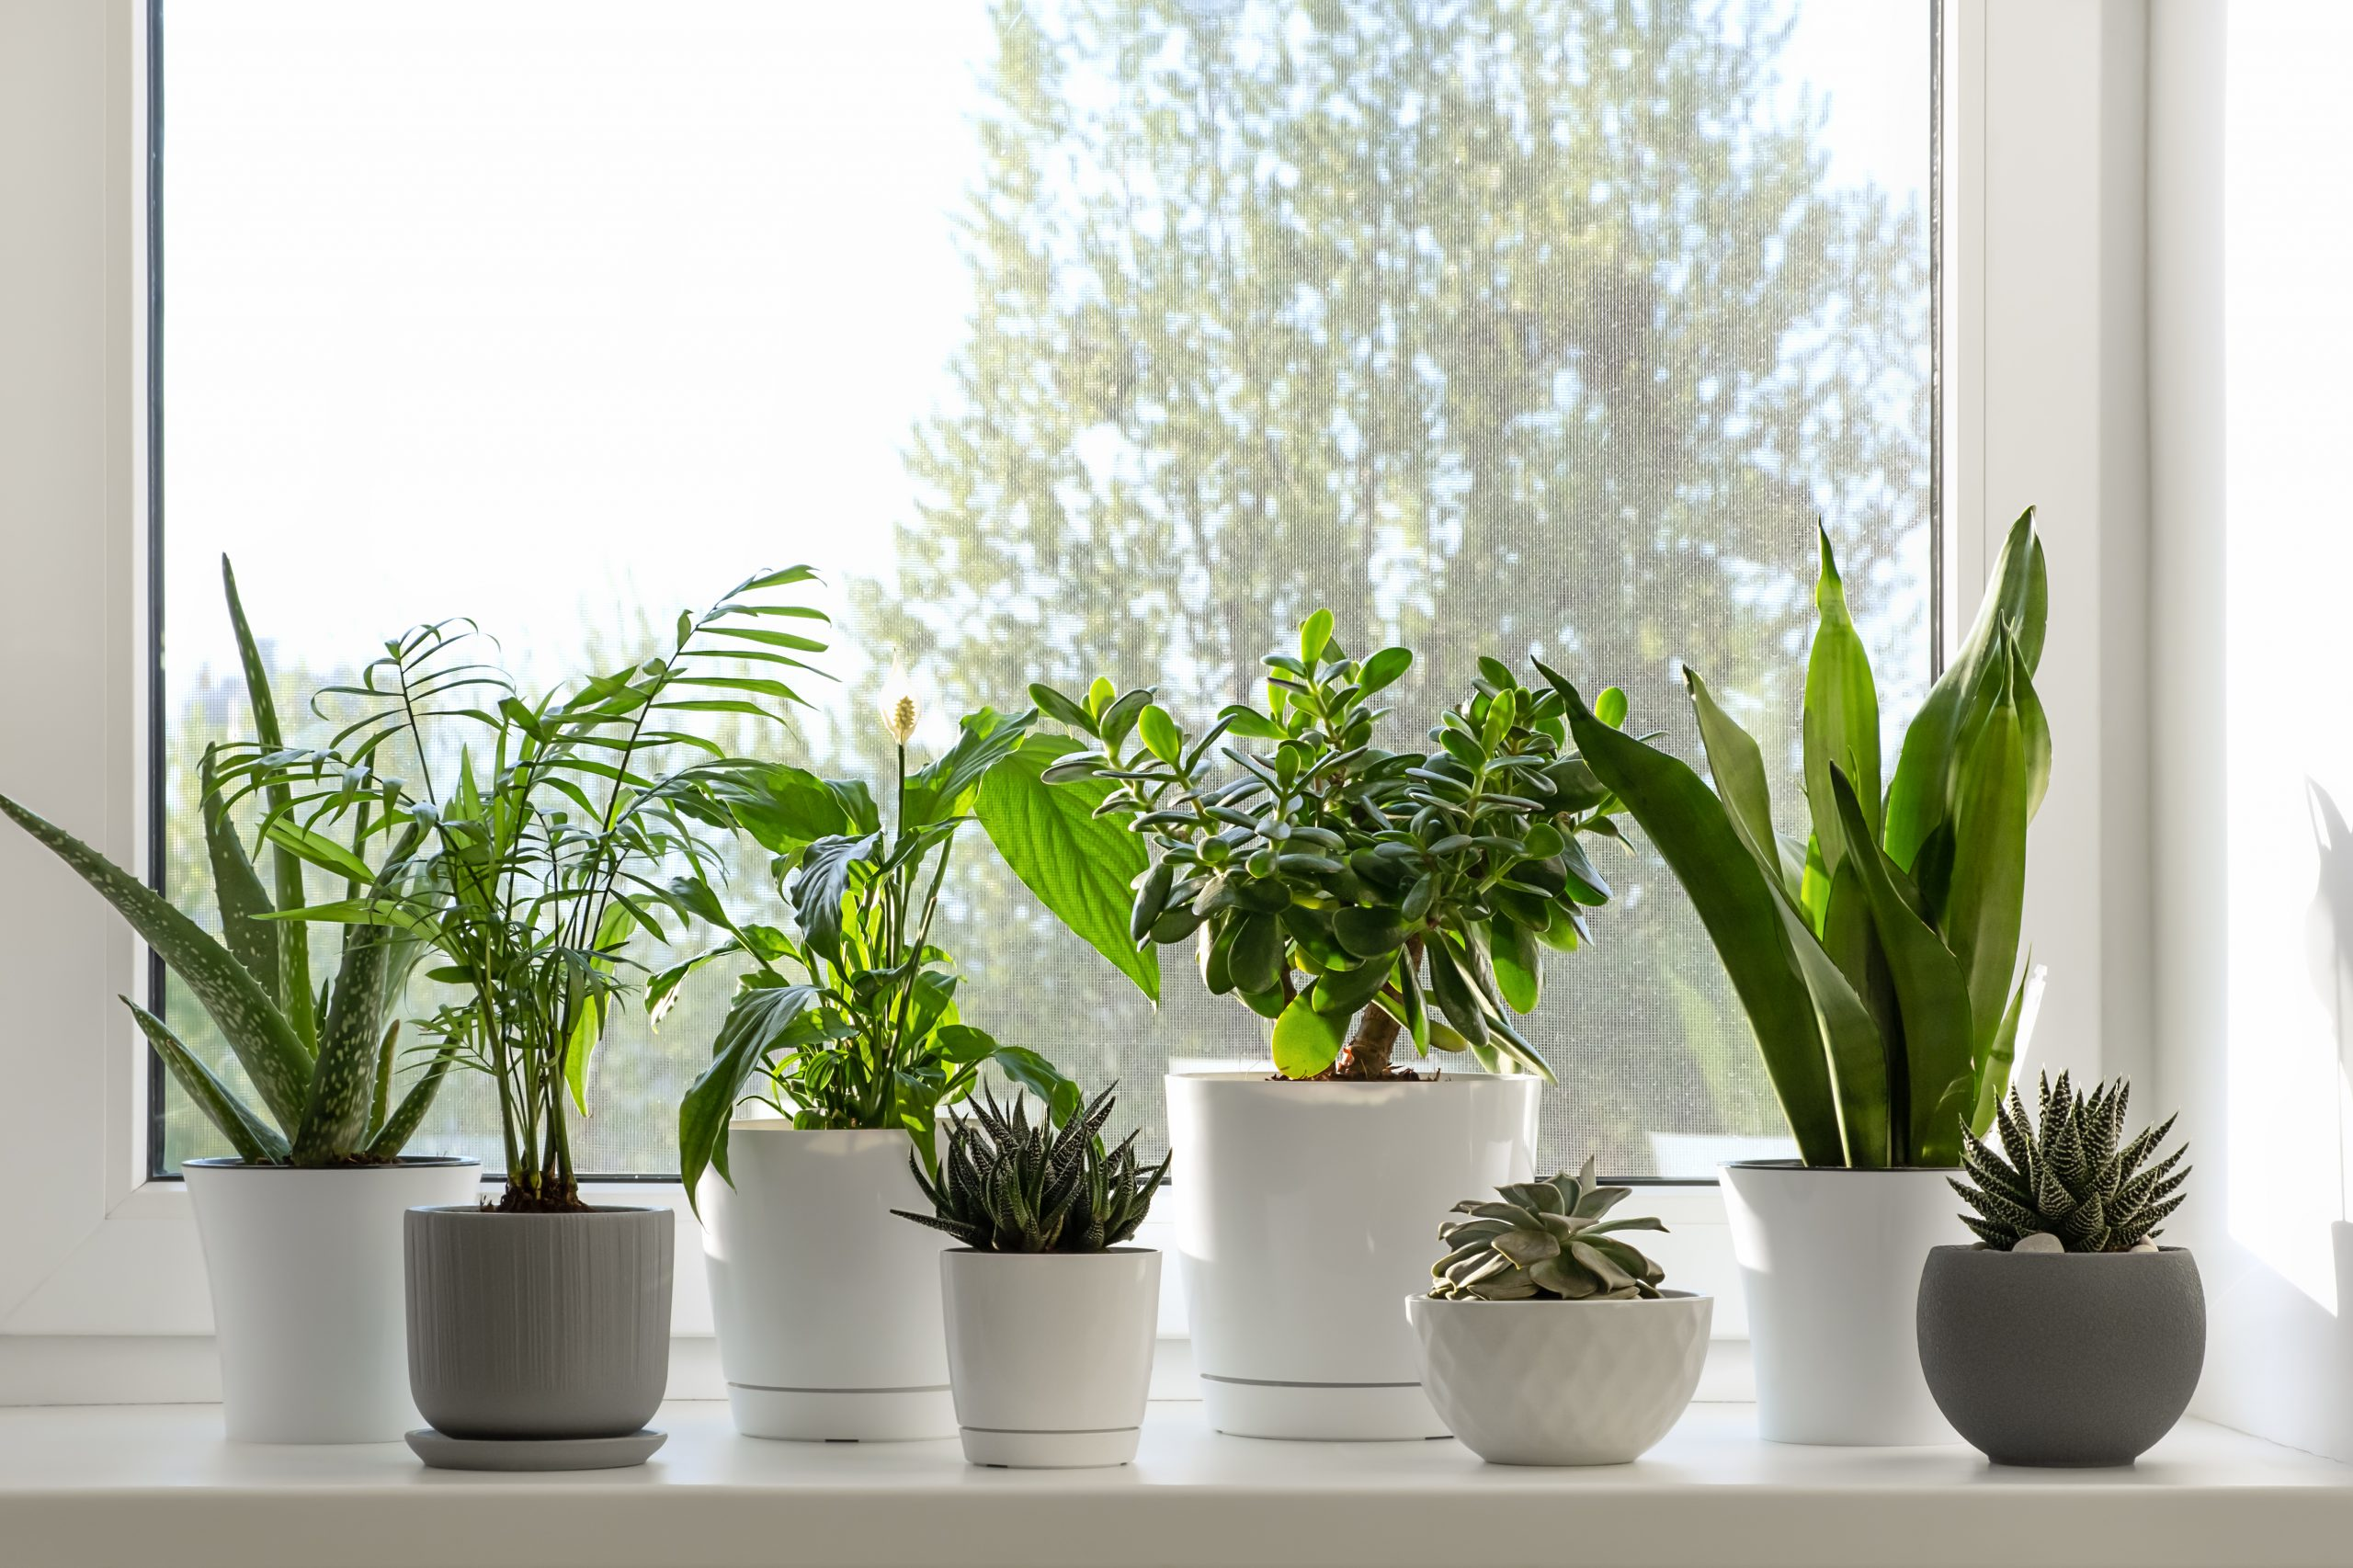 two rows of potted plants